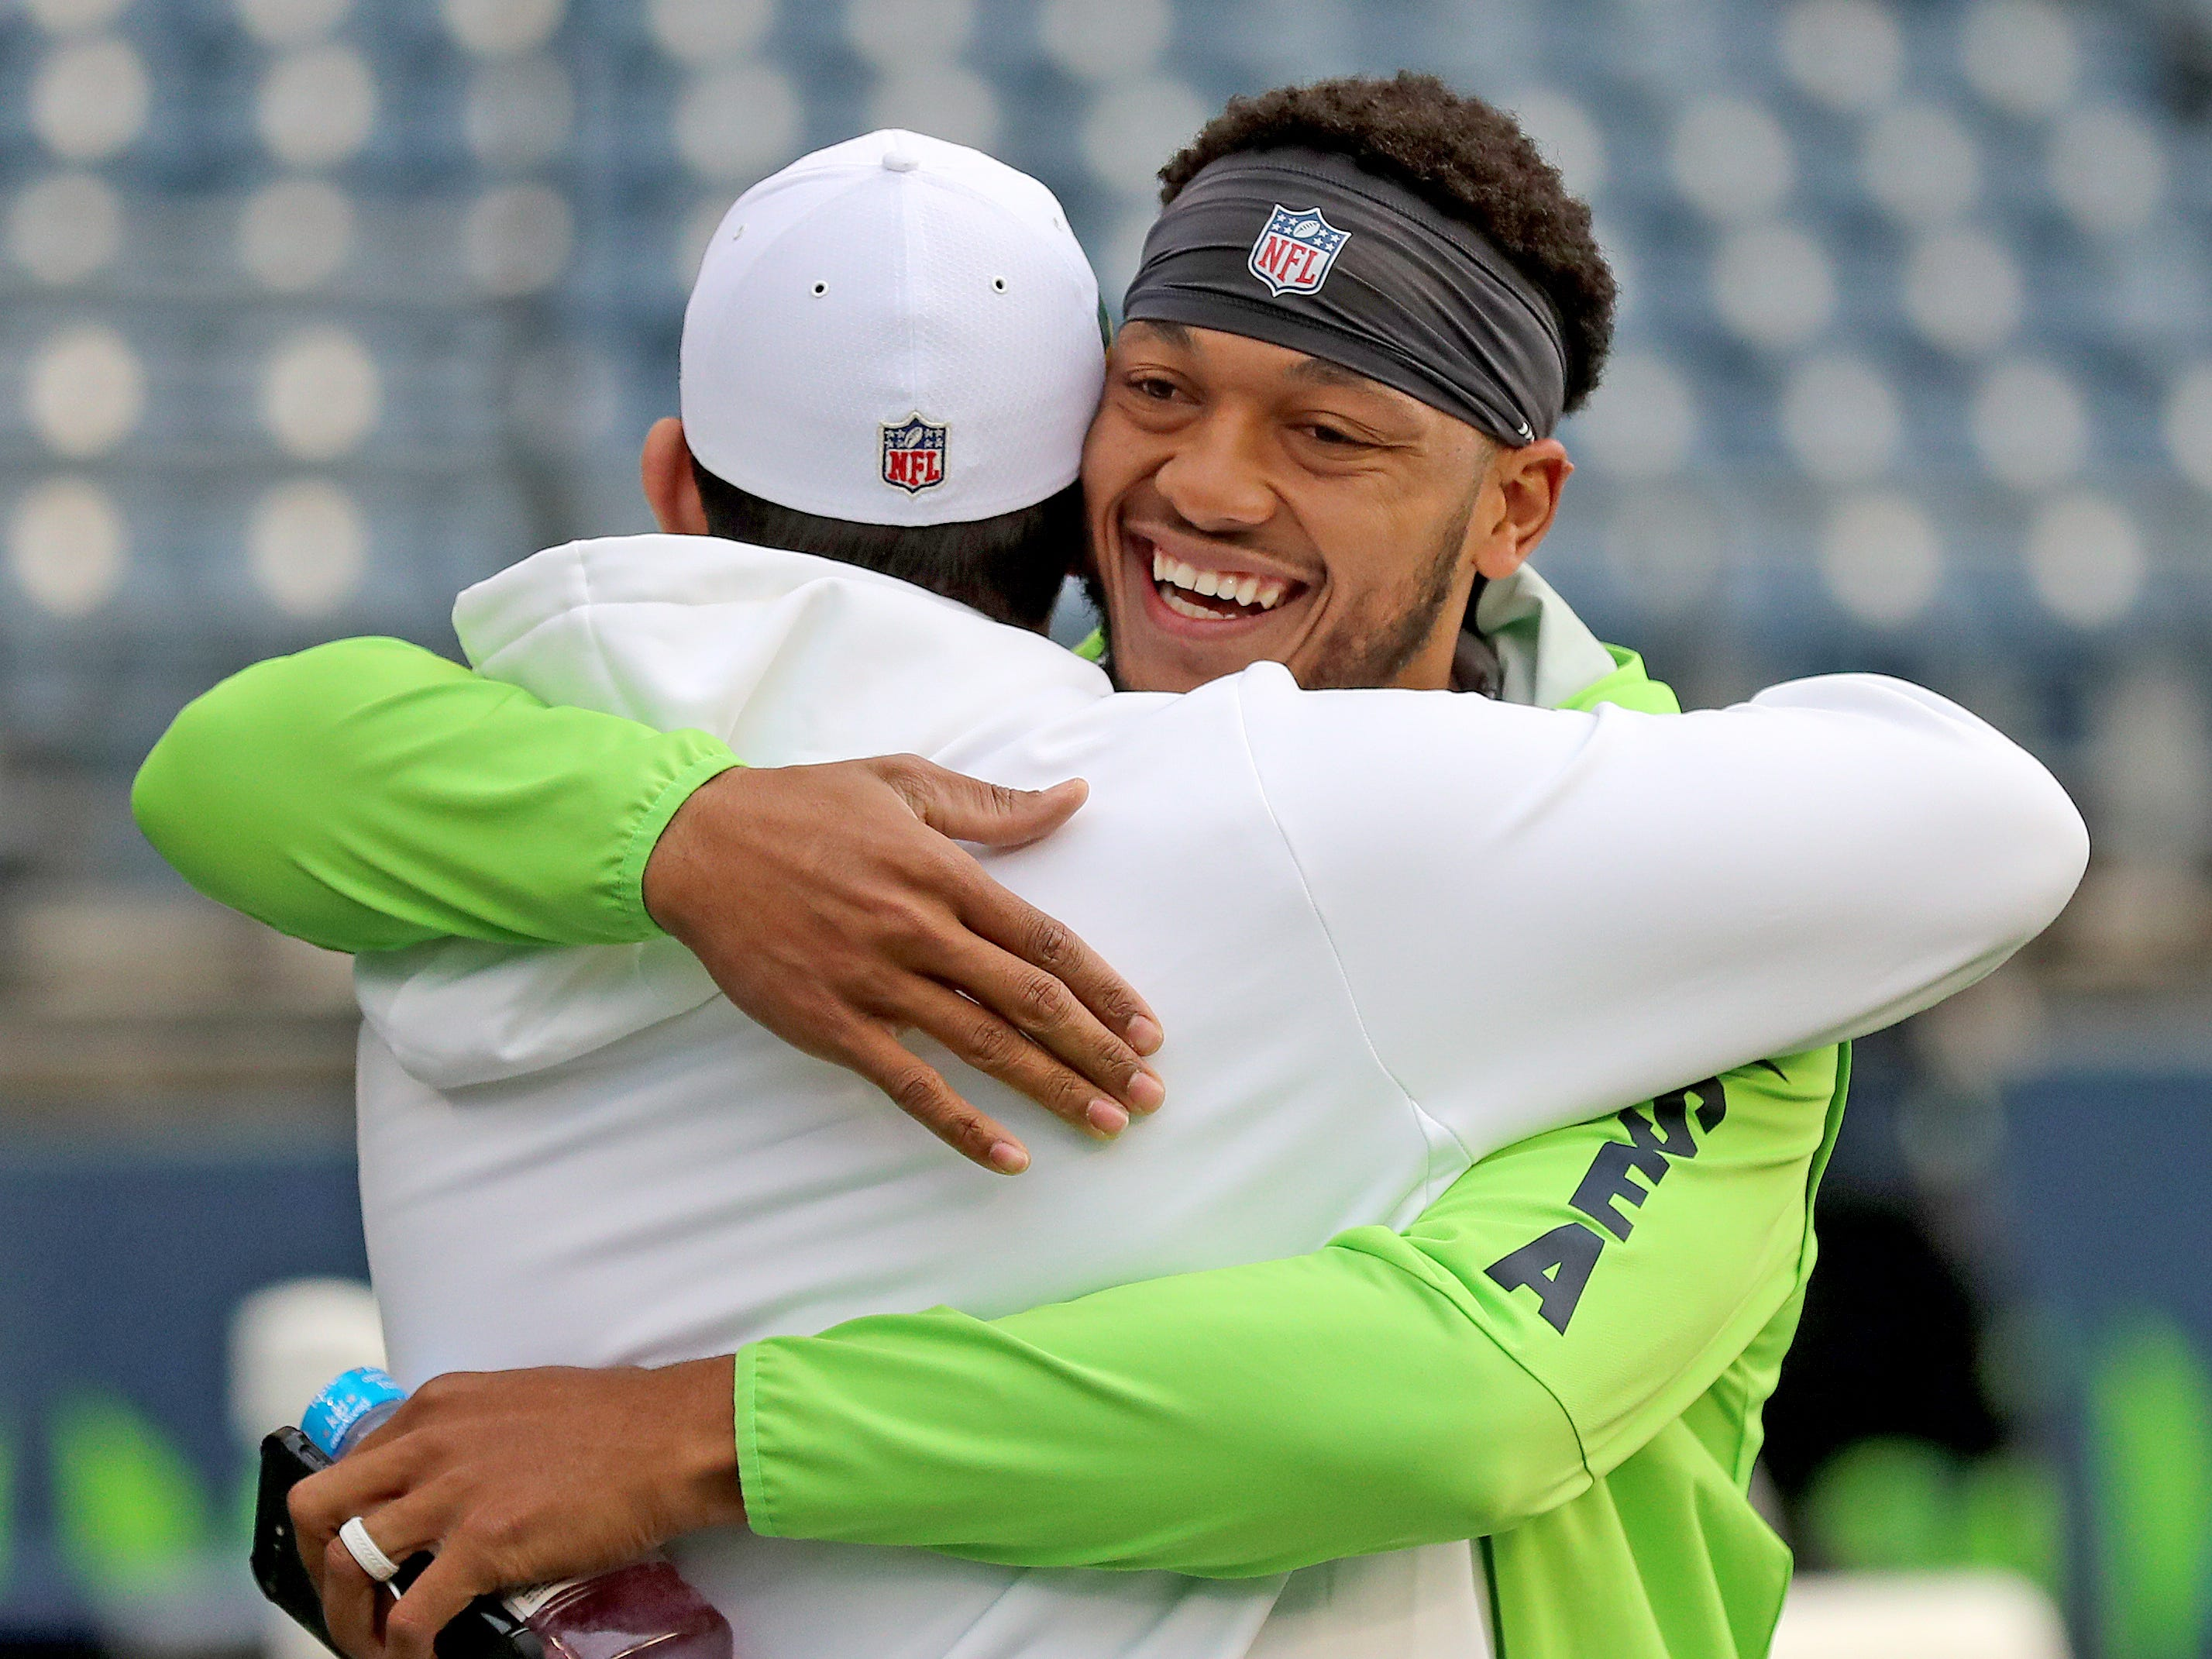 Former Packers quarterback Brett  Hundley, who was released from the Packers after training camp, hugs a Packers staff member as he greets former teammates before the game against the Seattle Seahawks at CenturyLink Field Thursday, November 15, 2018 in Seattle, WA.